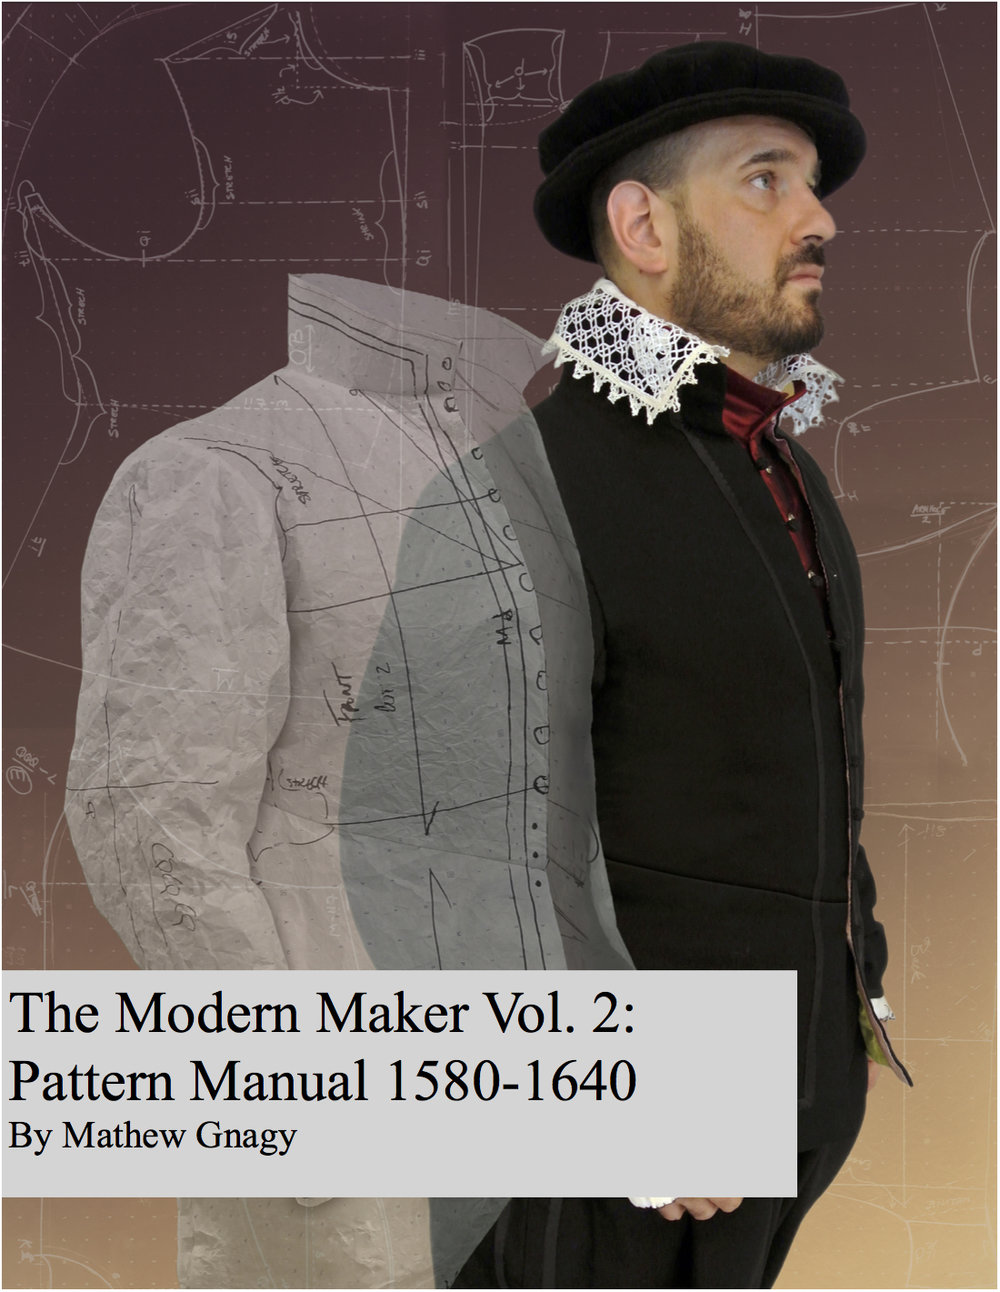 The cover of this 291 page pattern making book.